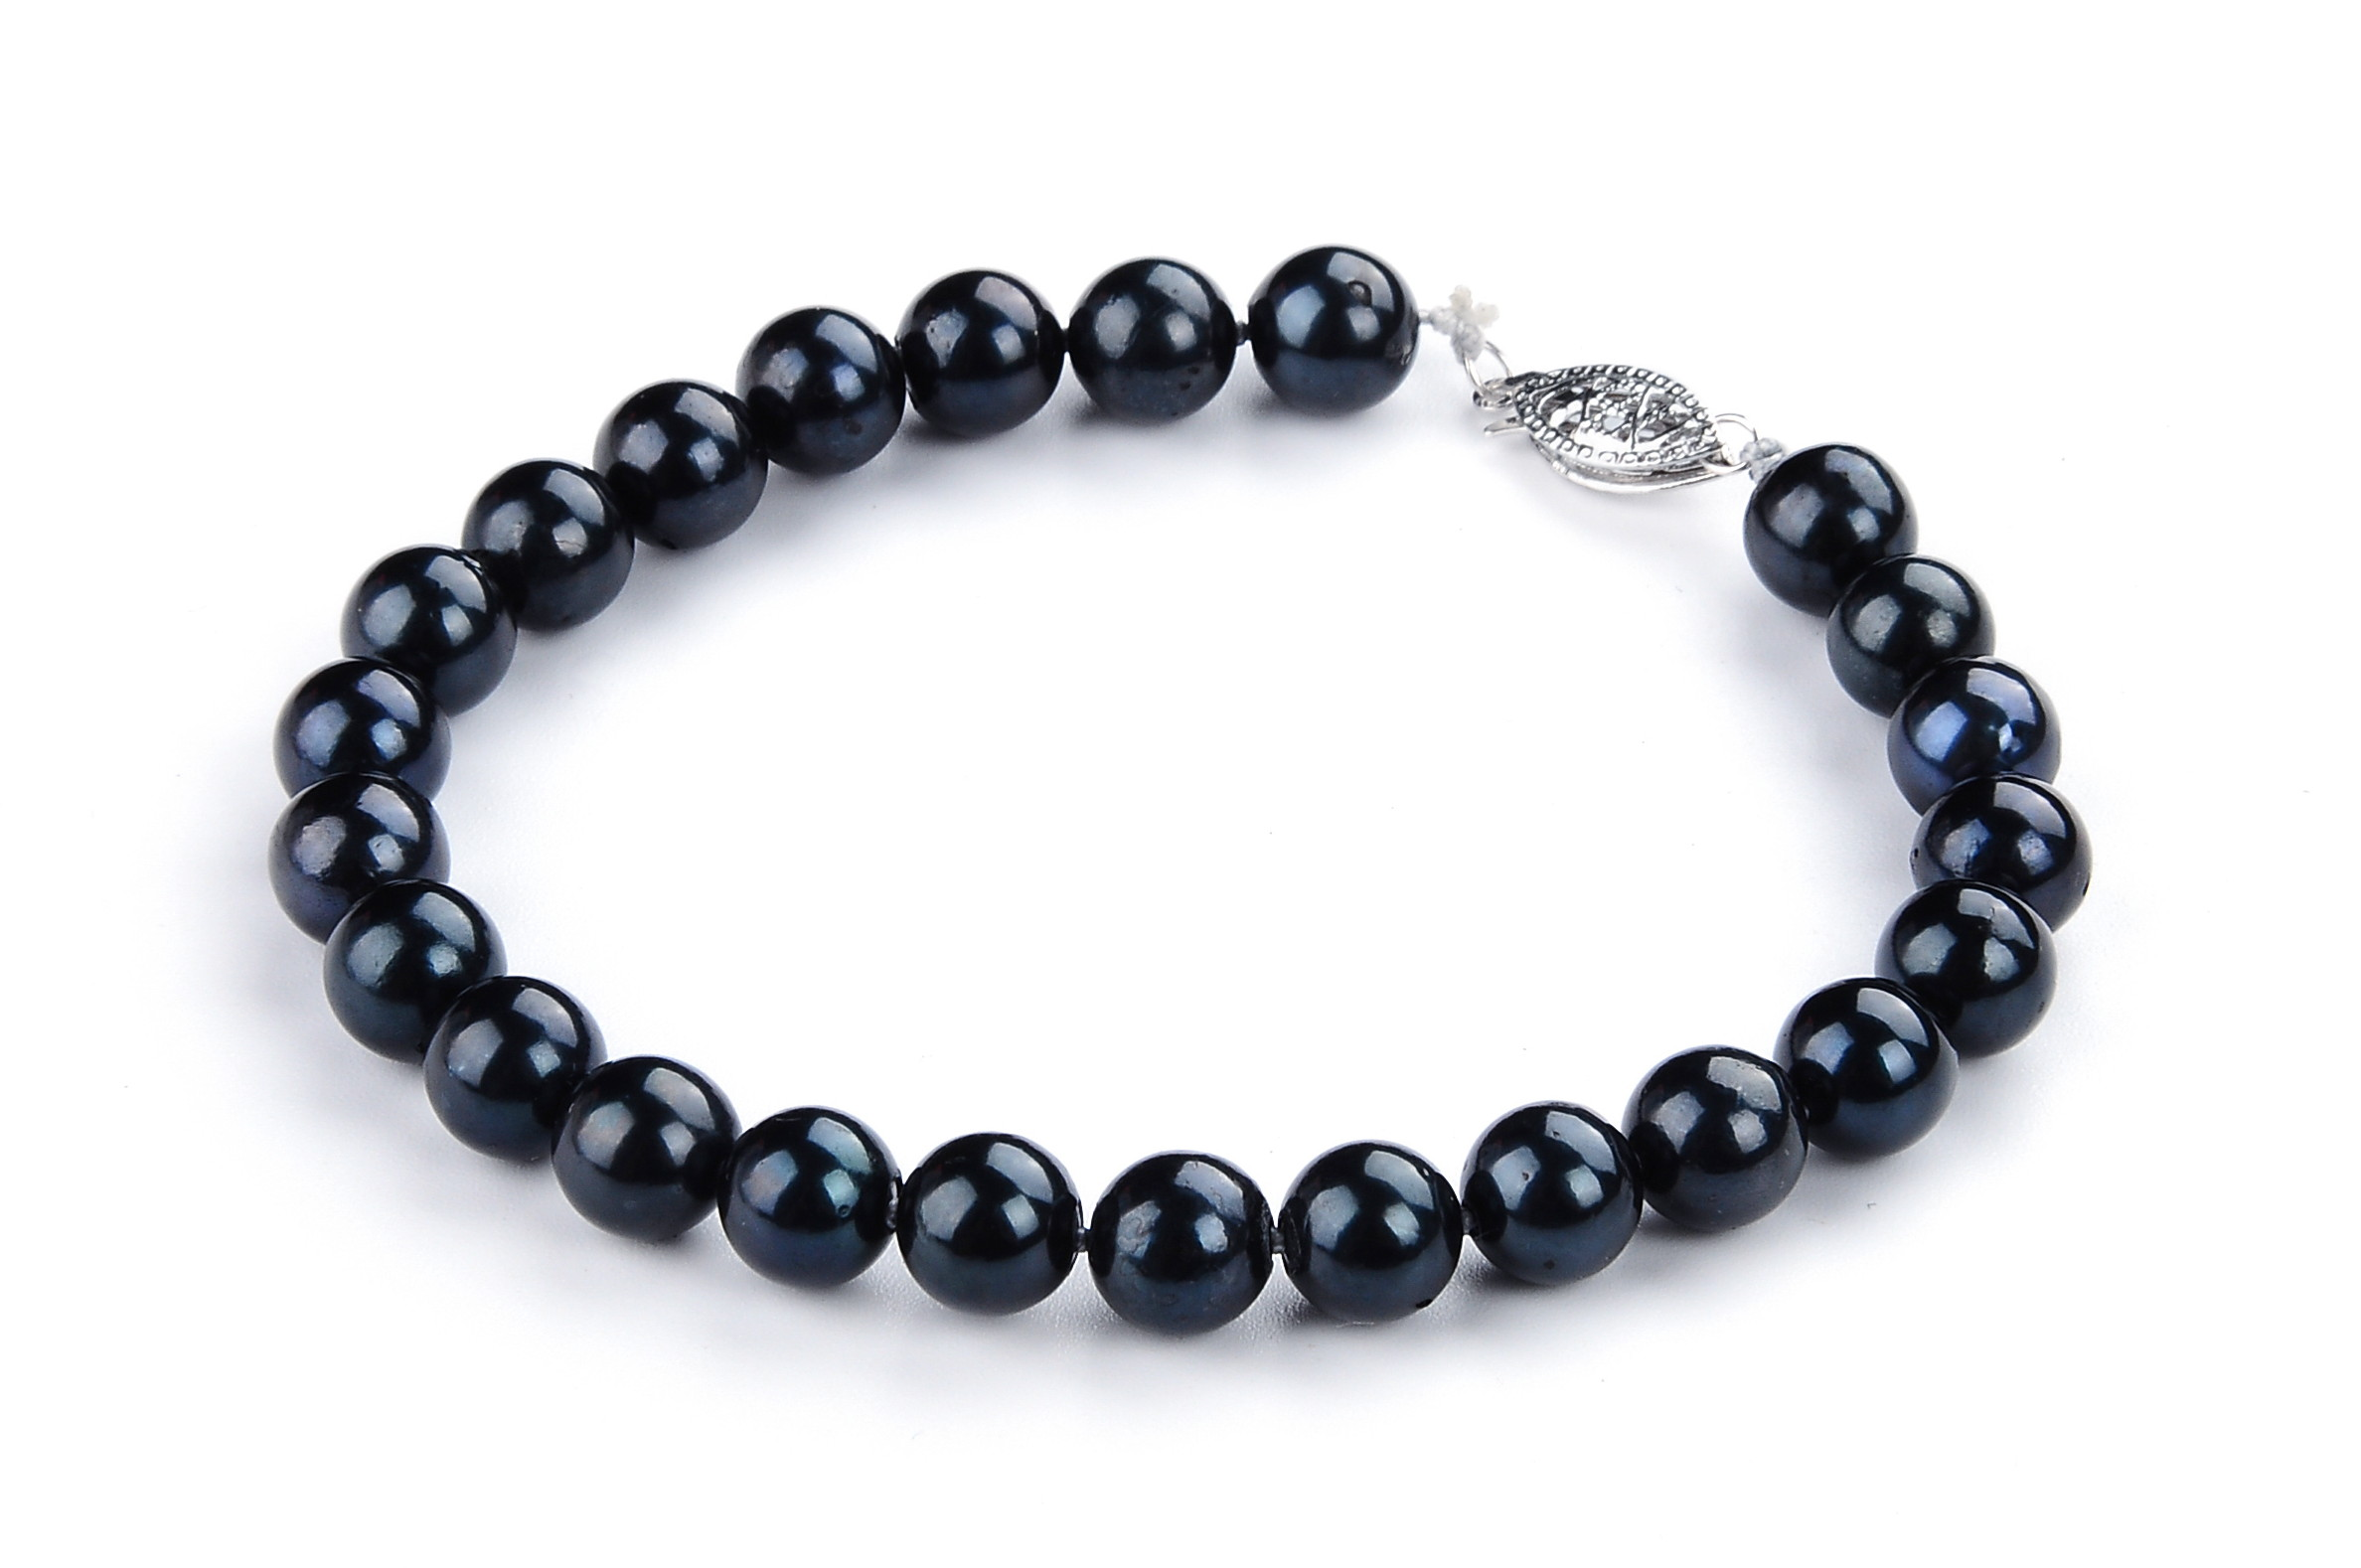 7.5 mm AAA Black  Saltwater Cultured Pearl Bracelet 14K Gold Clasp Sku#: Br15-S7.5